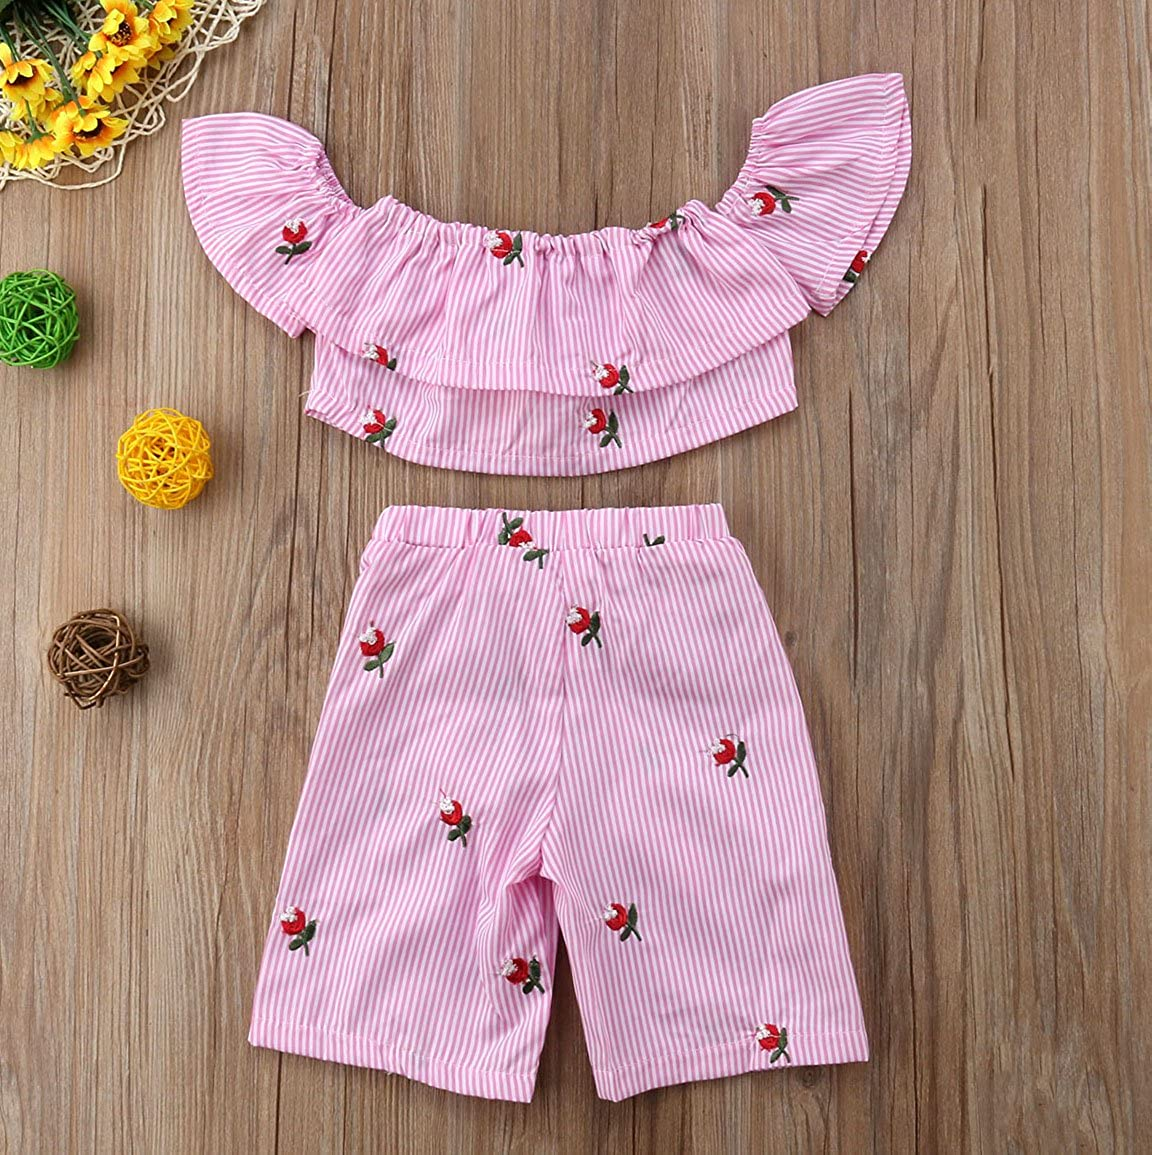 2dd5618c3b3bc Clothing & Accessories Toddler Girl Stripe Off-shouler Tube Top Baby Pant  Set Outfit